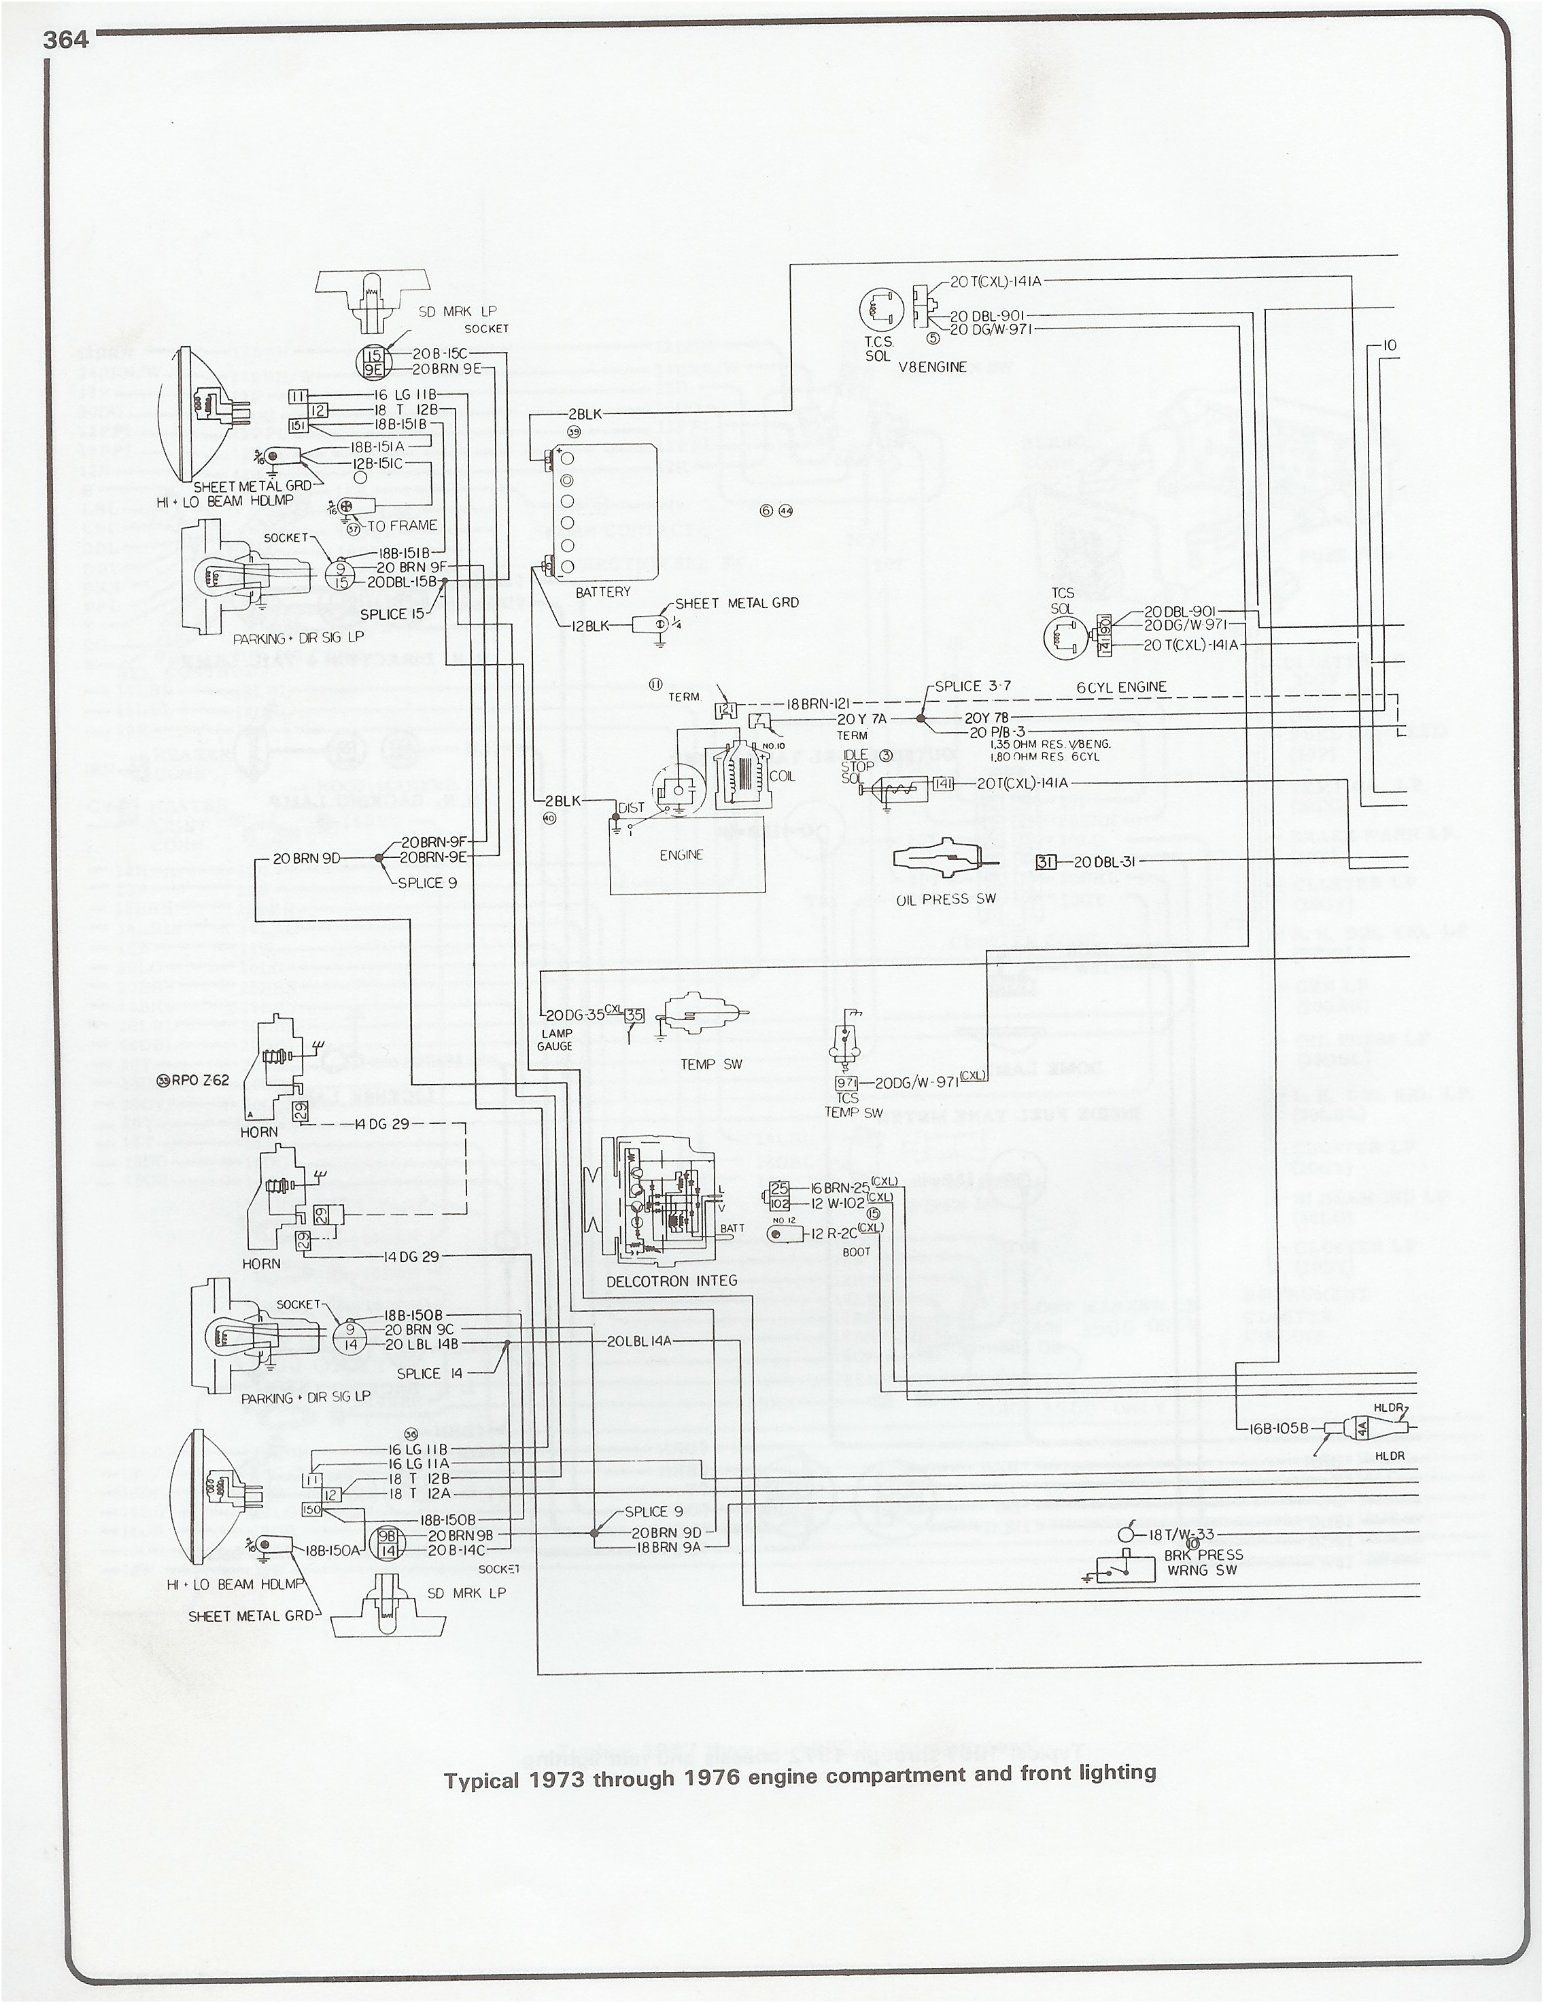 small resolution of wiring diagram 1973 1976 chevy pickup chevy wiring diagram 76 gmc tail light wiring